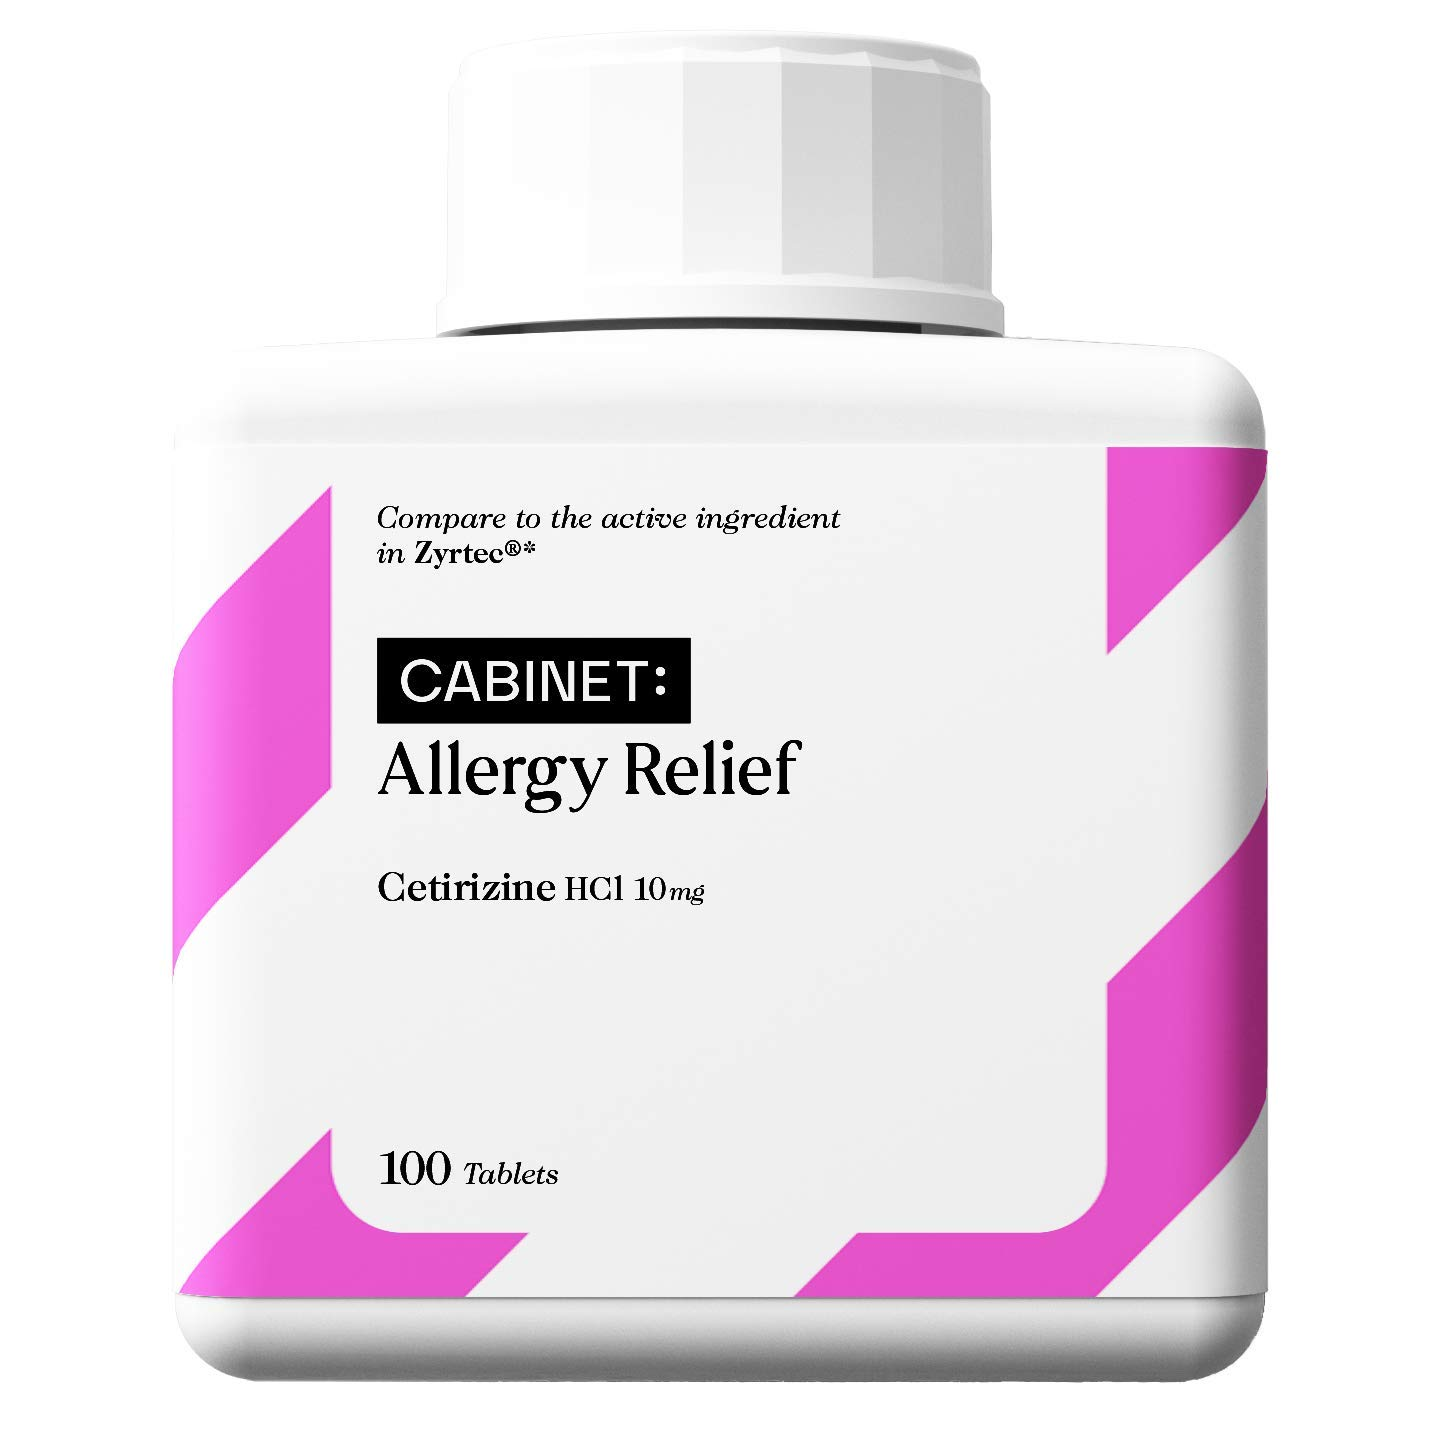 Cabinet 24-Hour Allergy Medicine (100-Count) Non-Drowsy Antihistamine for Pollen, Hay Fever, Dry, Itchy Eyes, Allergies | Cetirizine HCl Caplets | Kids and Adults